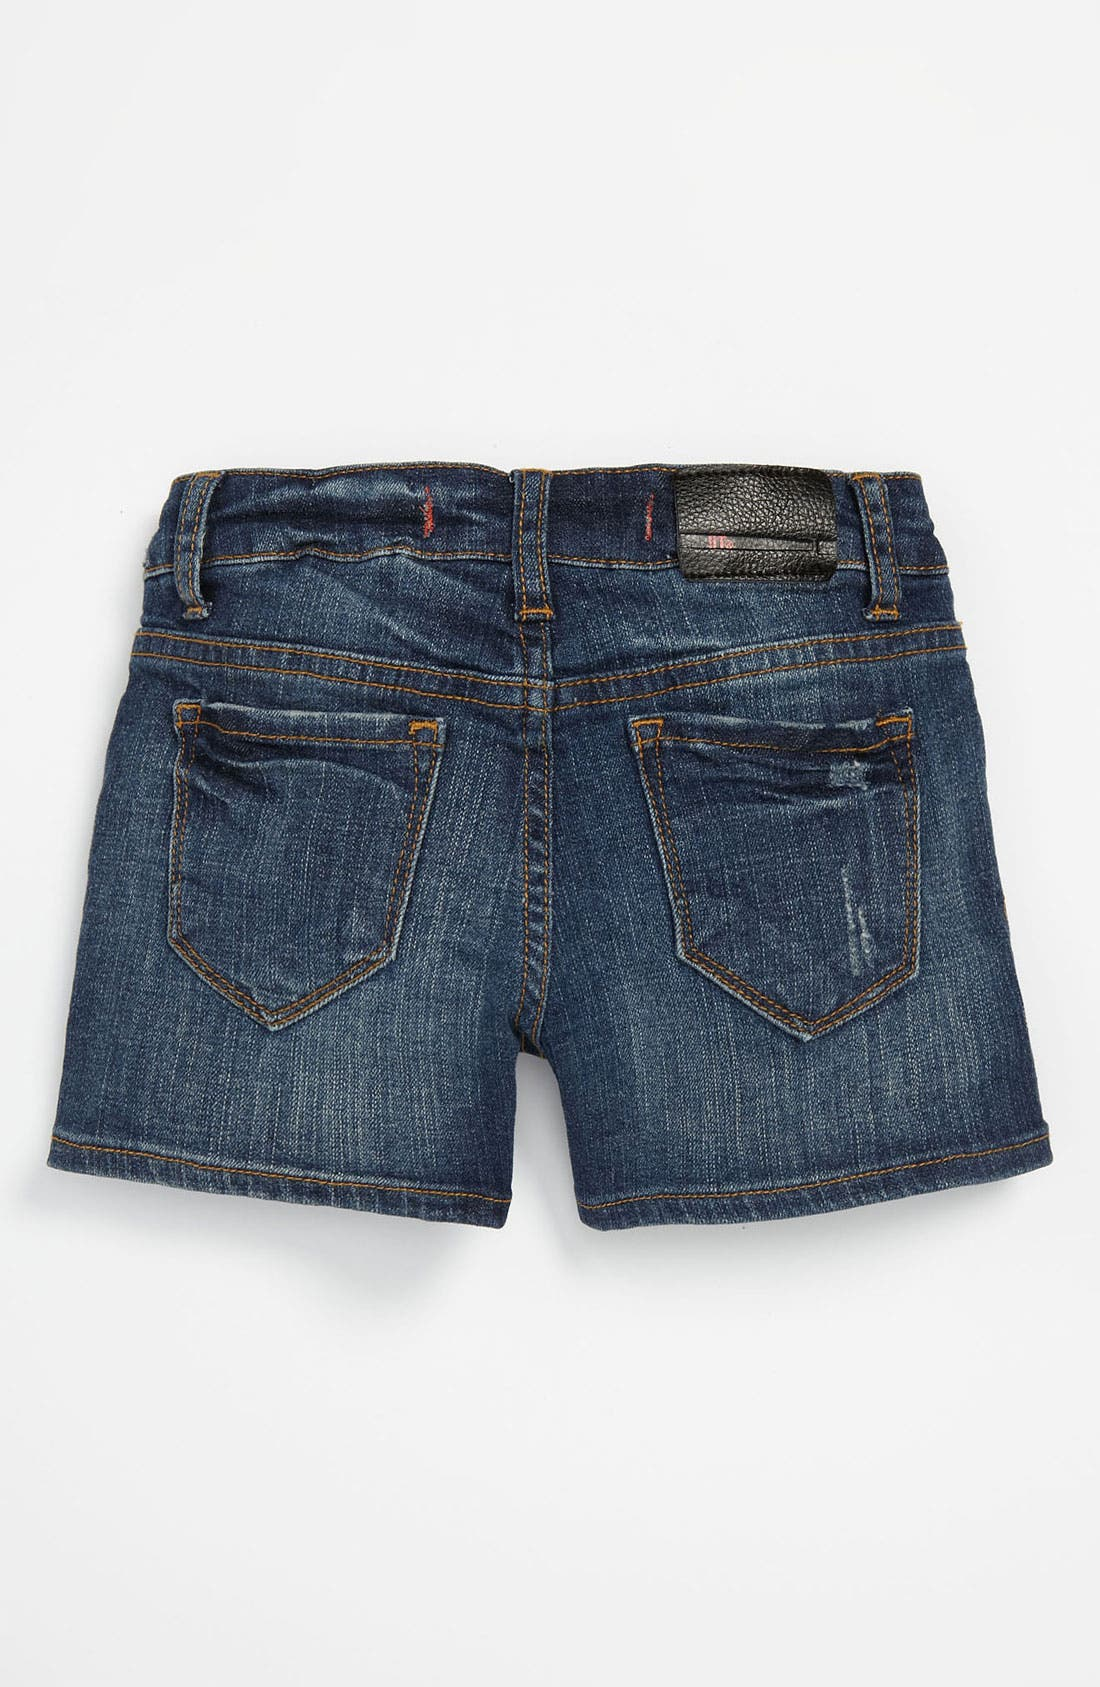 Main Image - !iT JEANS Denim Shorts (Big Girls)